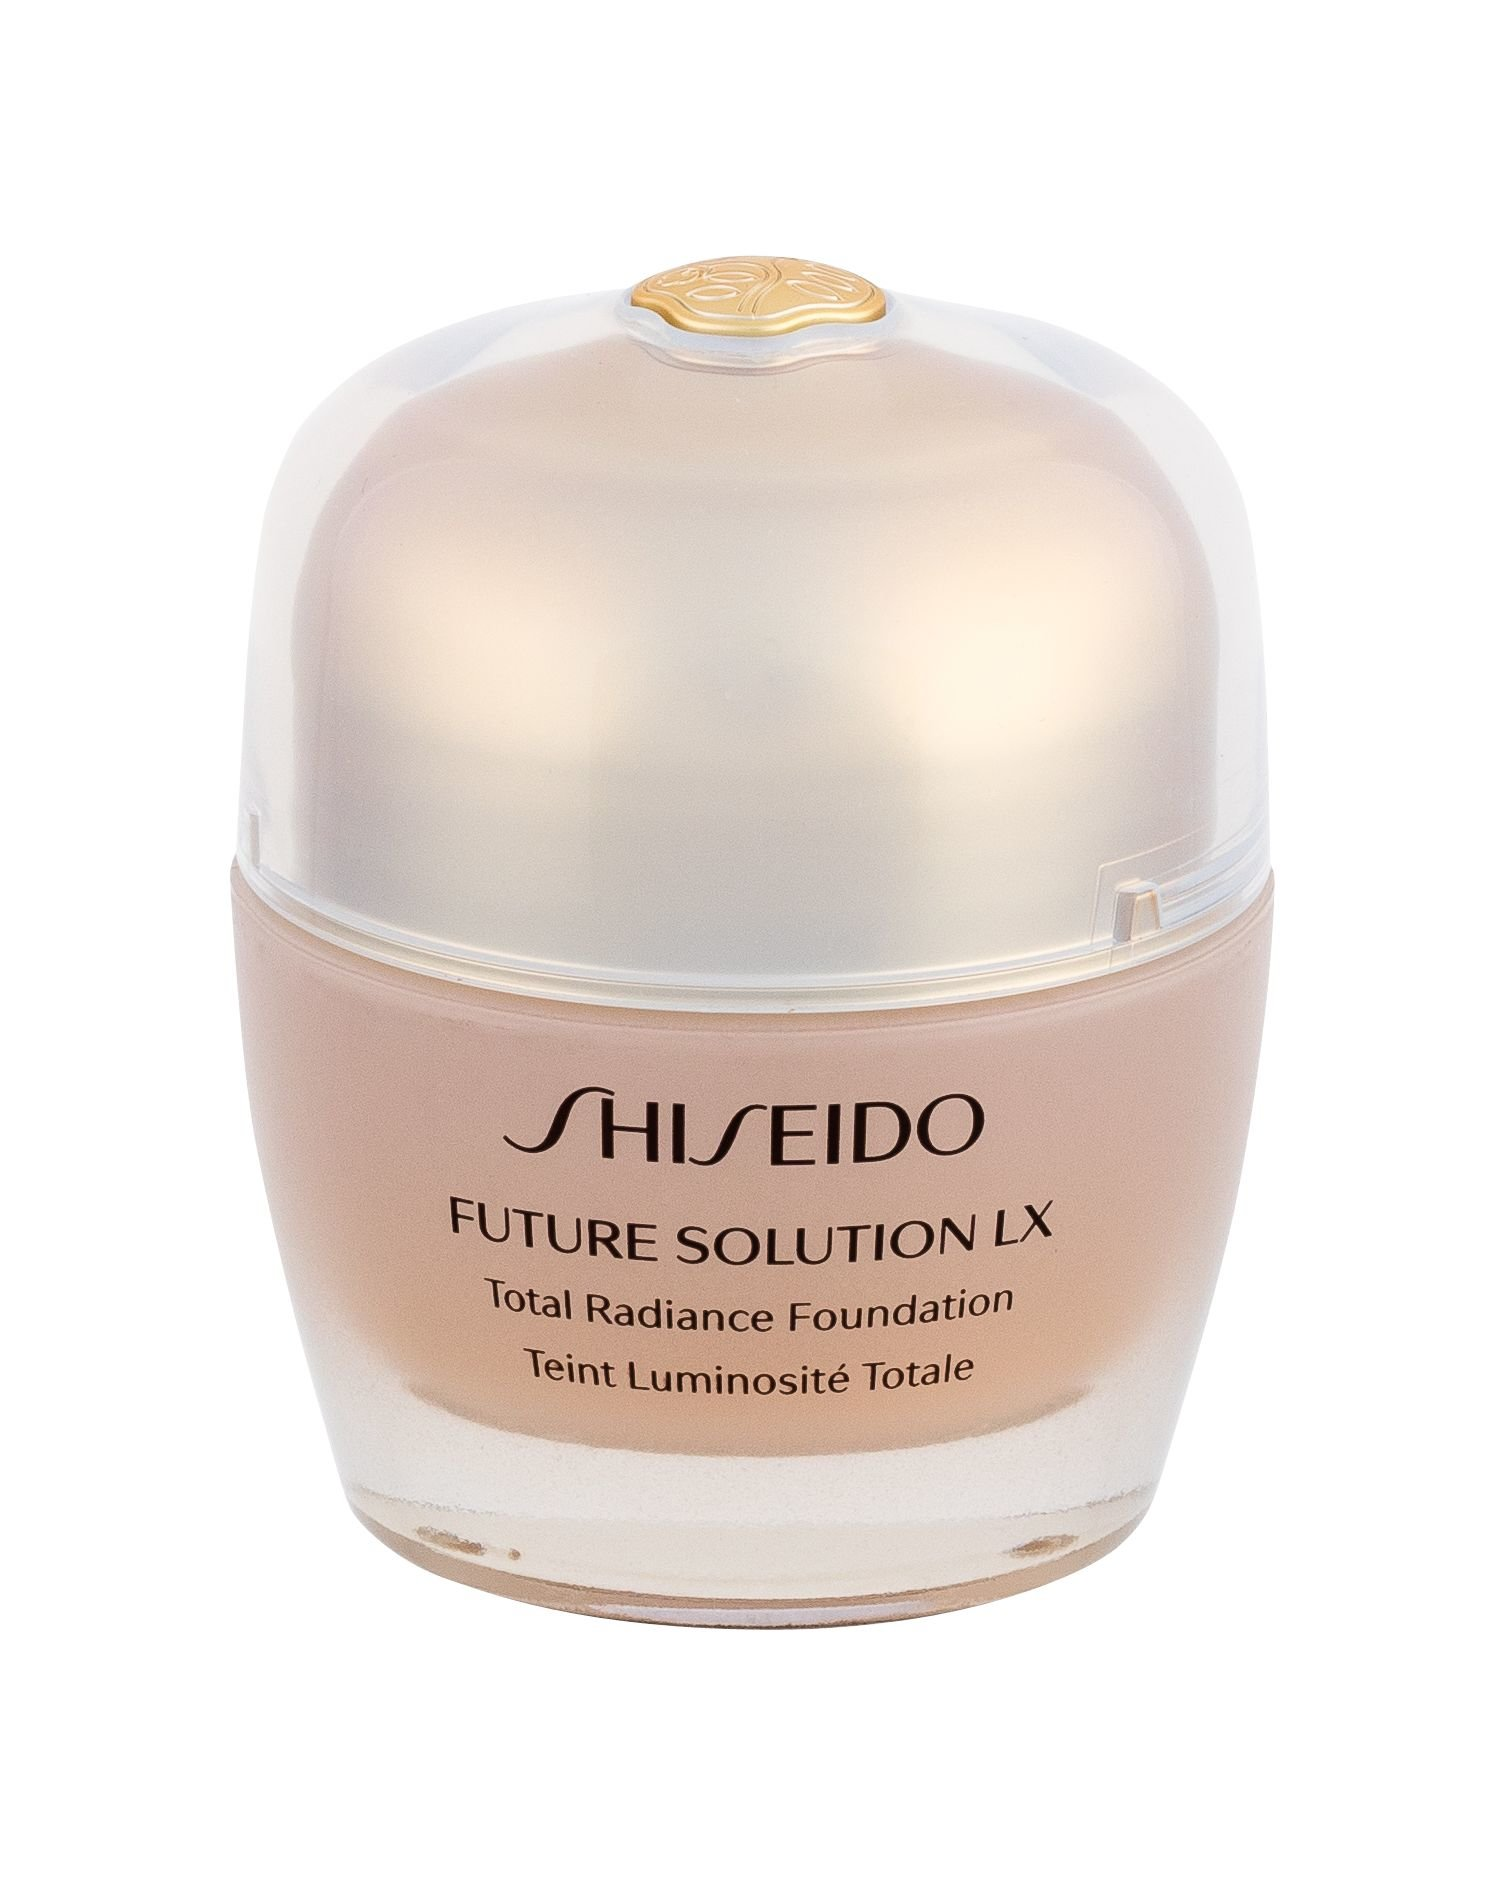 Shiseido Future Solution LX Makeup 30ml G3 Golden